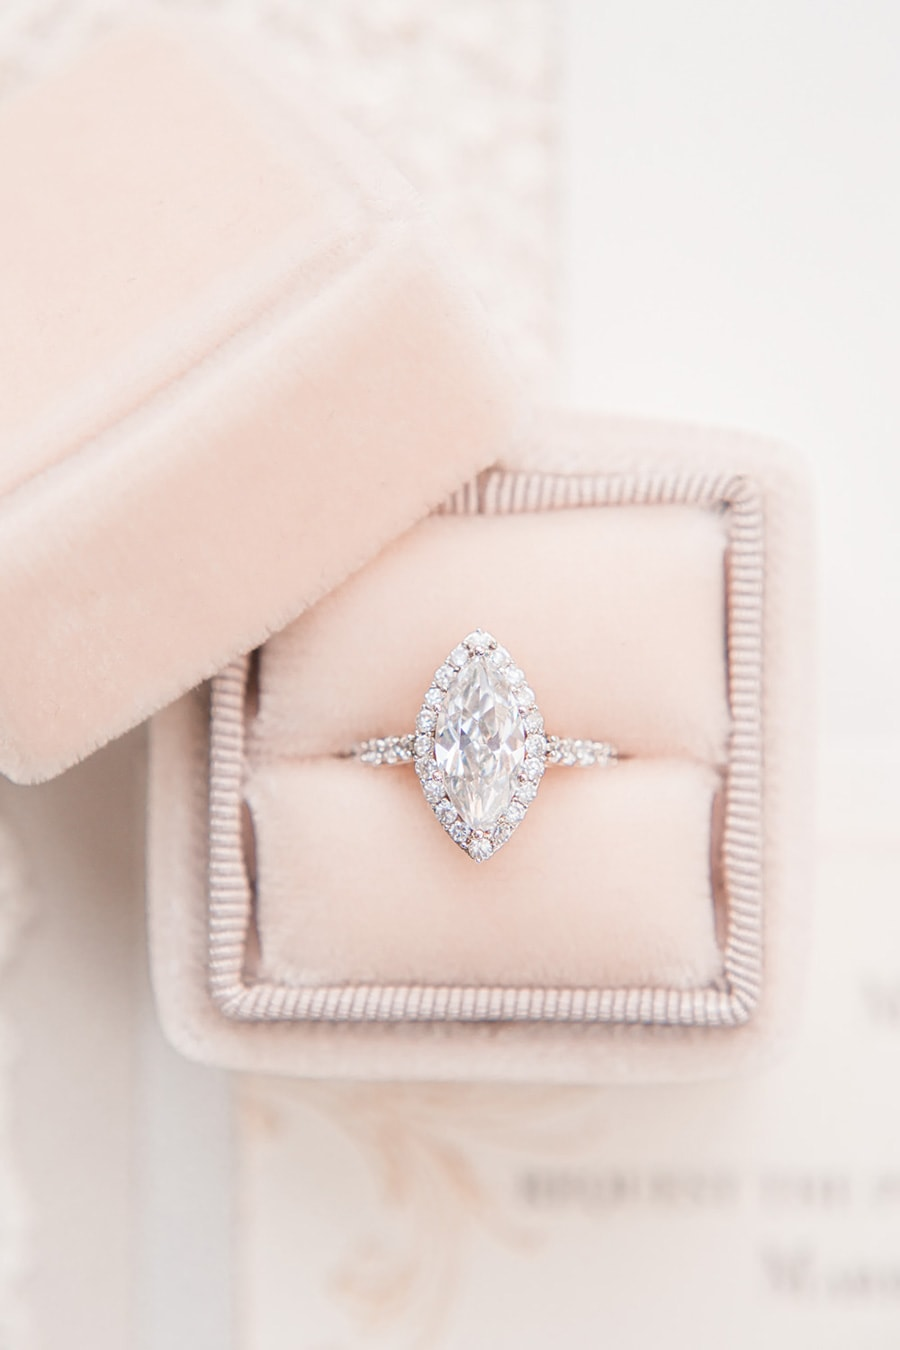 Rose gold marquise halo diamond engagement ring with pave band displayed in blush velvet ring box | Photography: Joanna Briggs Photography via Whimsical Wonderland Weddings